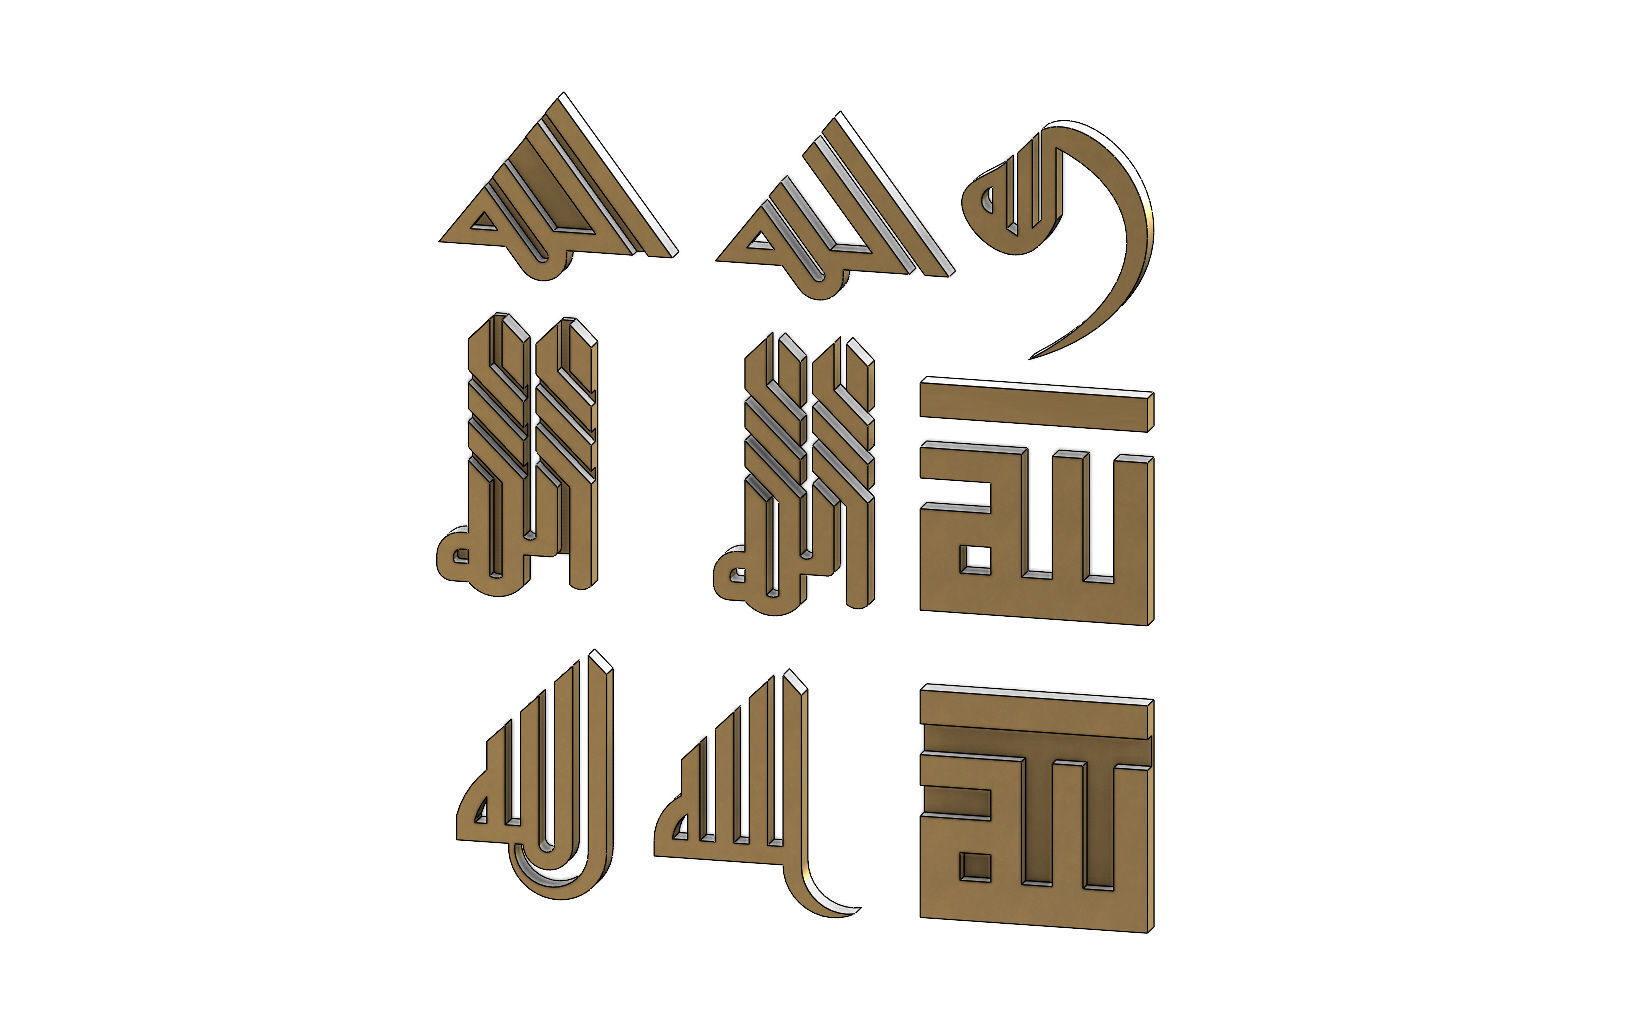 Allah name in 4 kufic fonts